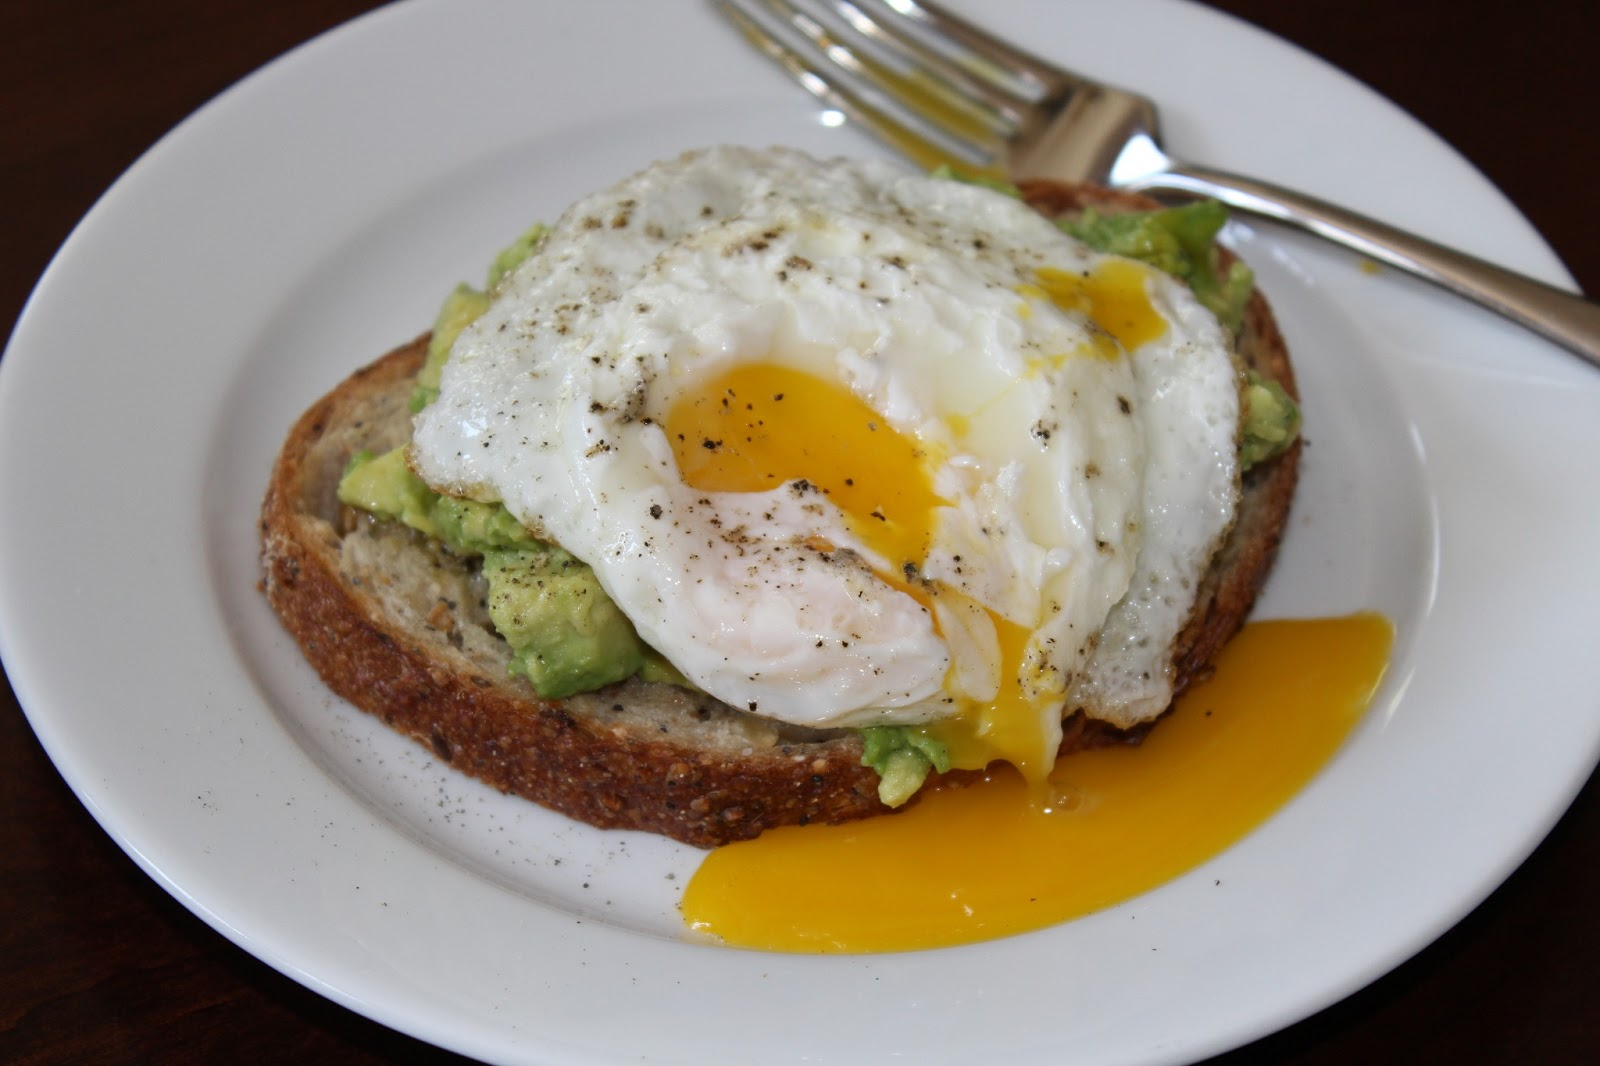 Avocado Breakfast Pizza With Fried Egg Recipes — Dishmaps